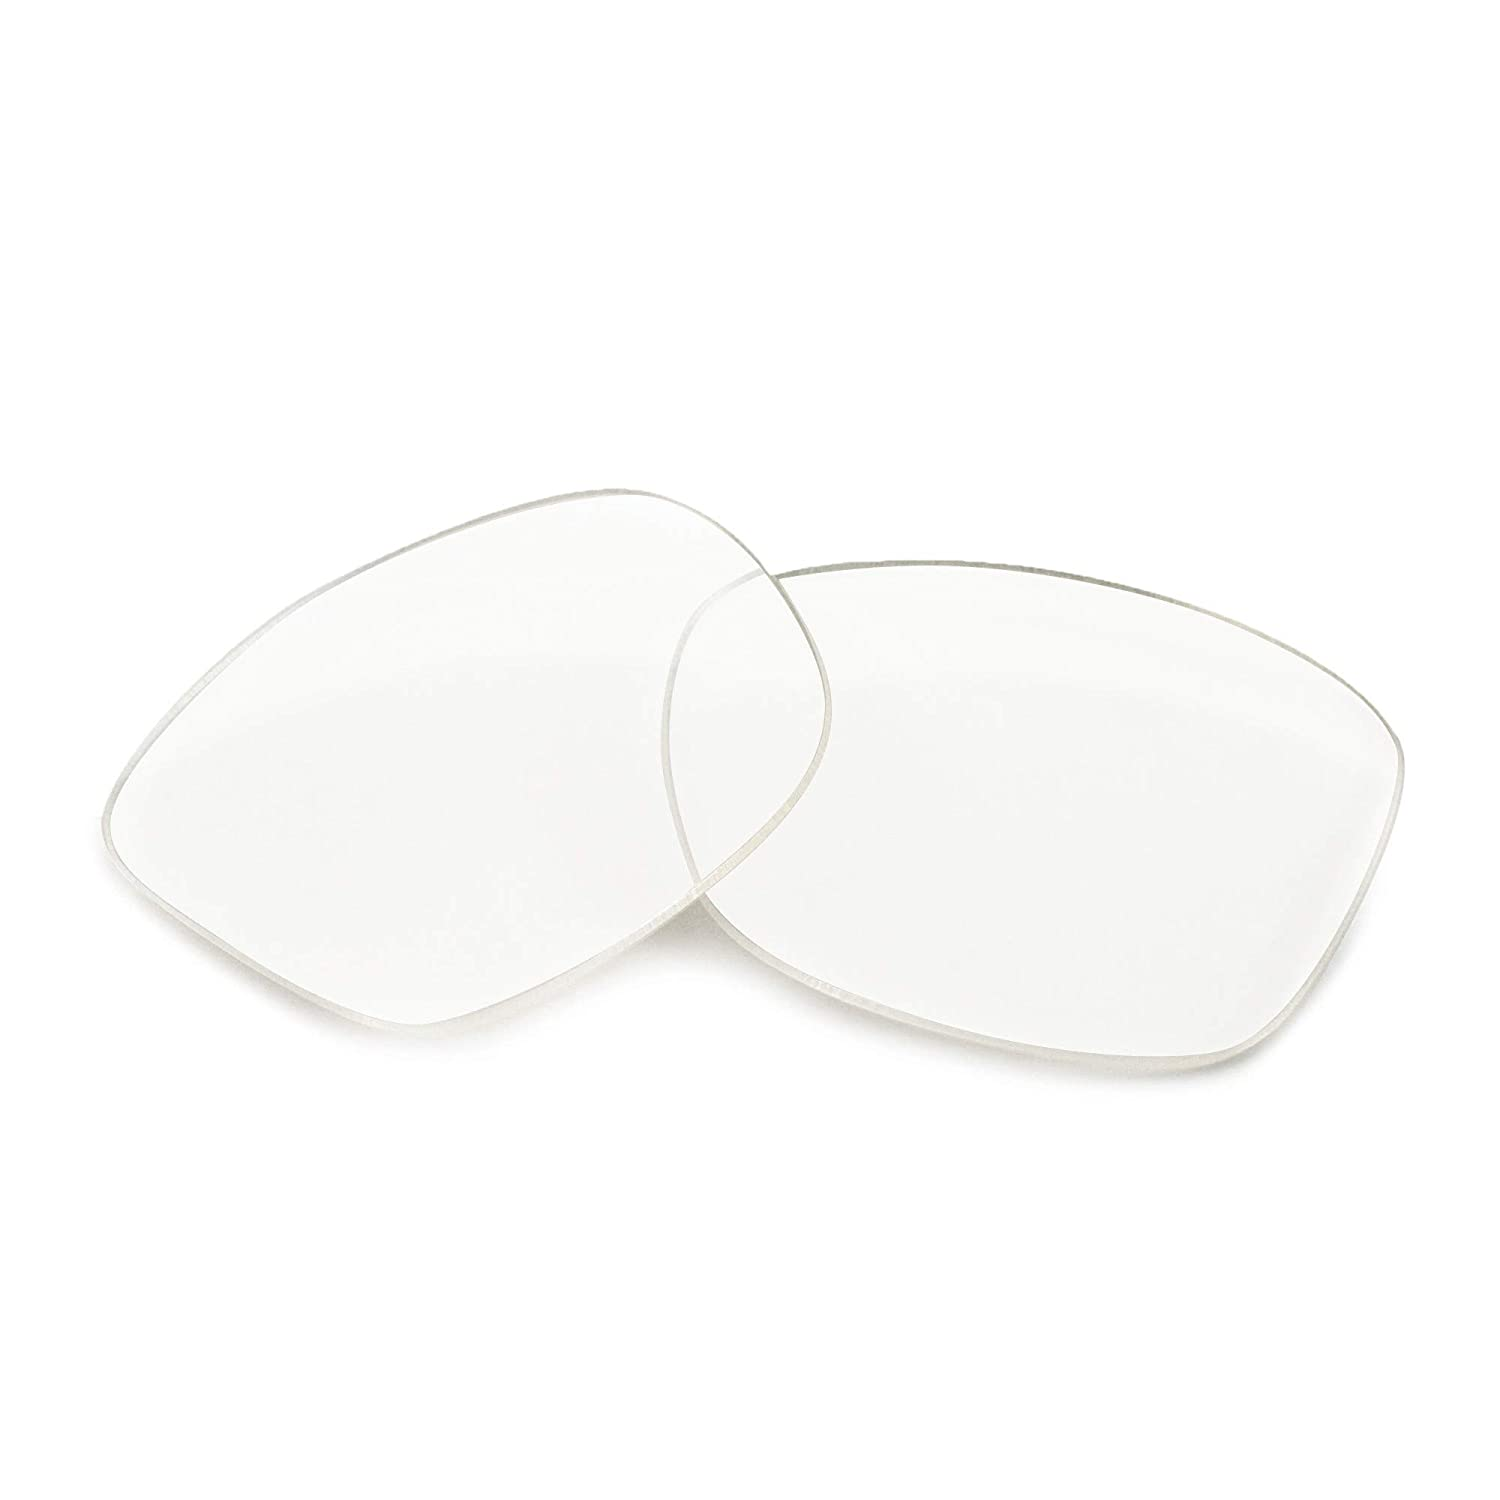 Fuse Lenses Non-Polarized Replacement Lenses for Diesel DL0211 49mm